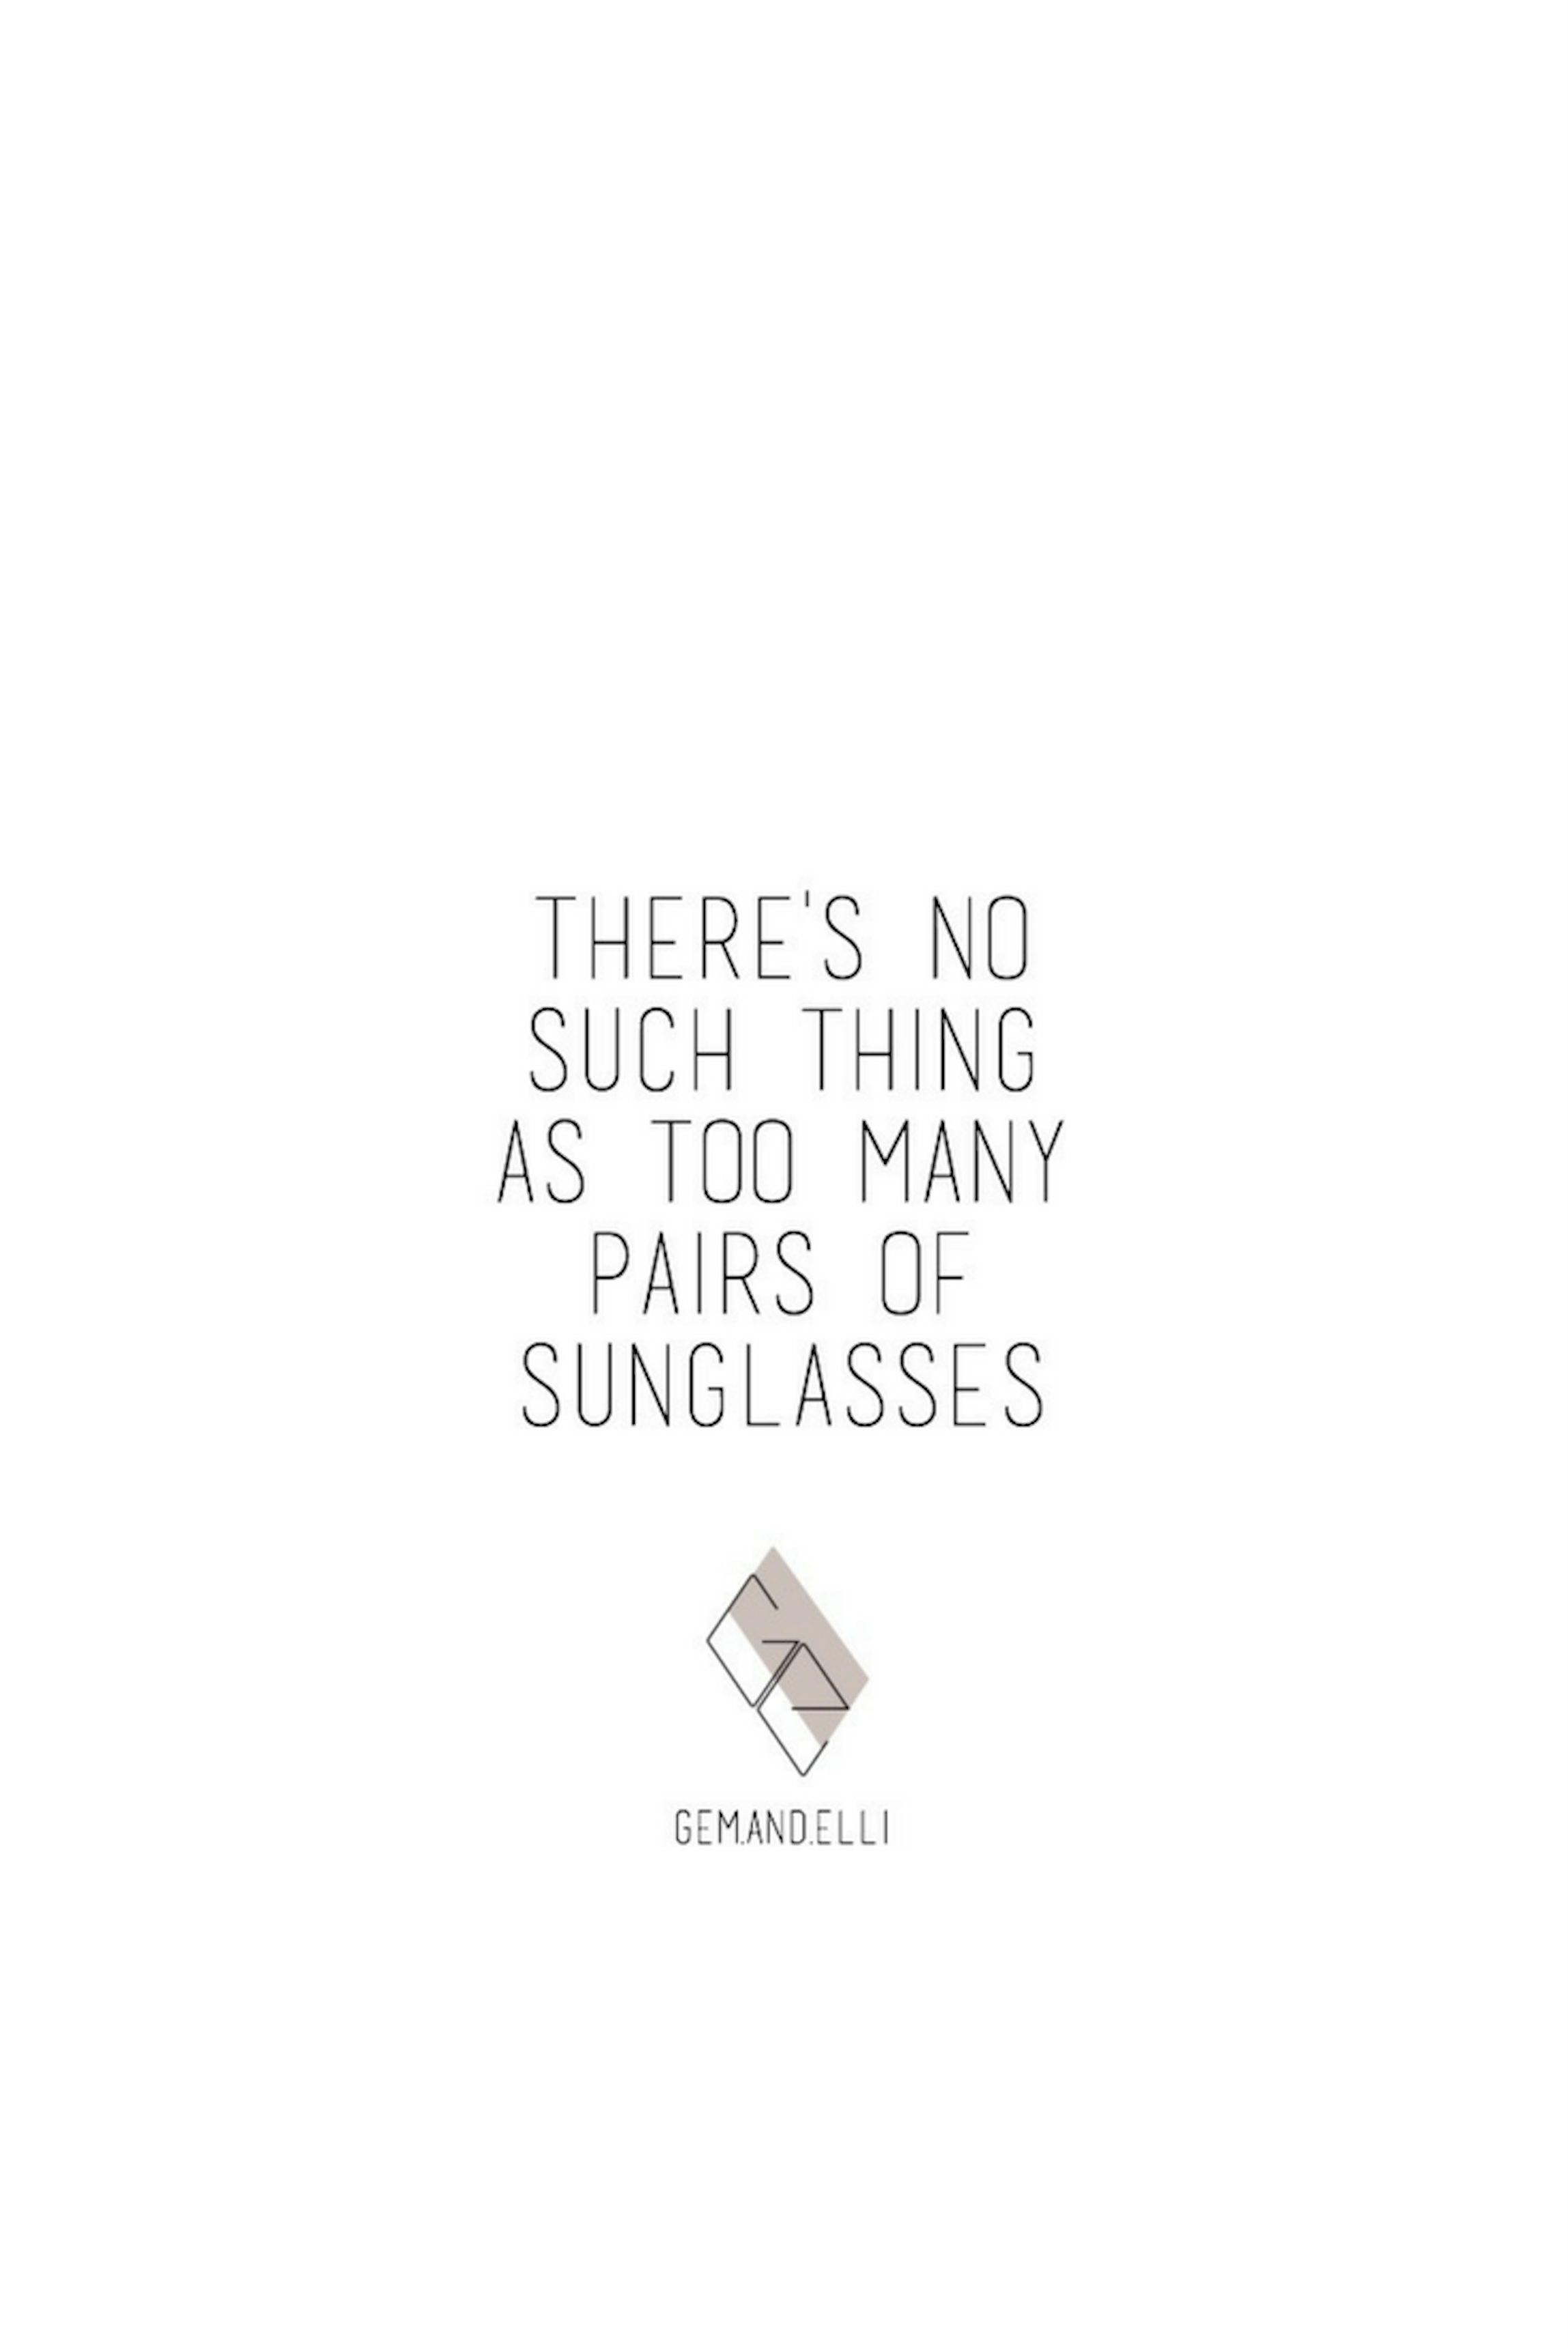 funny sunglasses quotes Sunglasses quotes, Real quotes